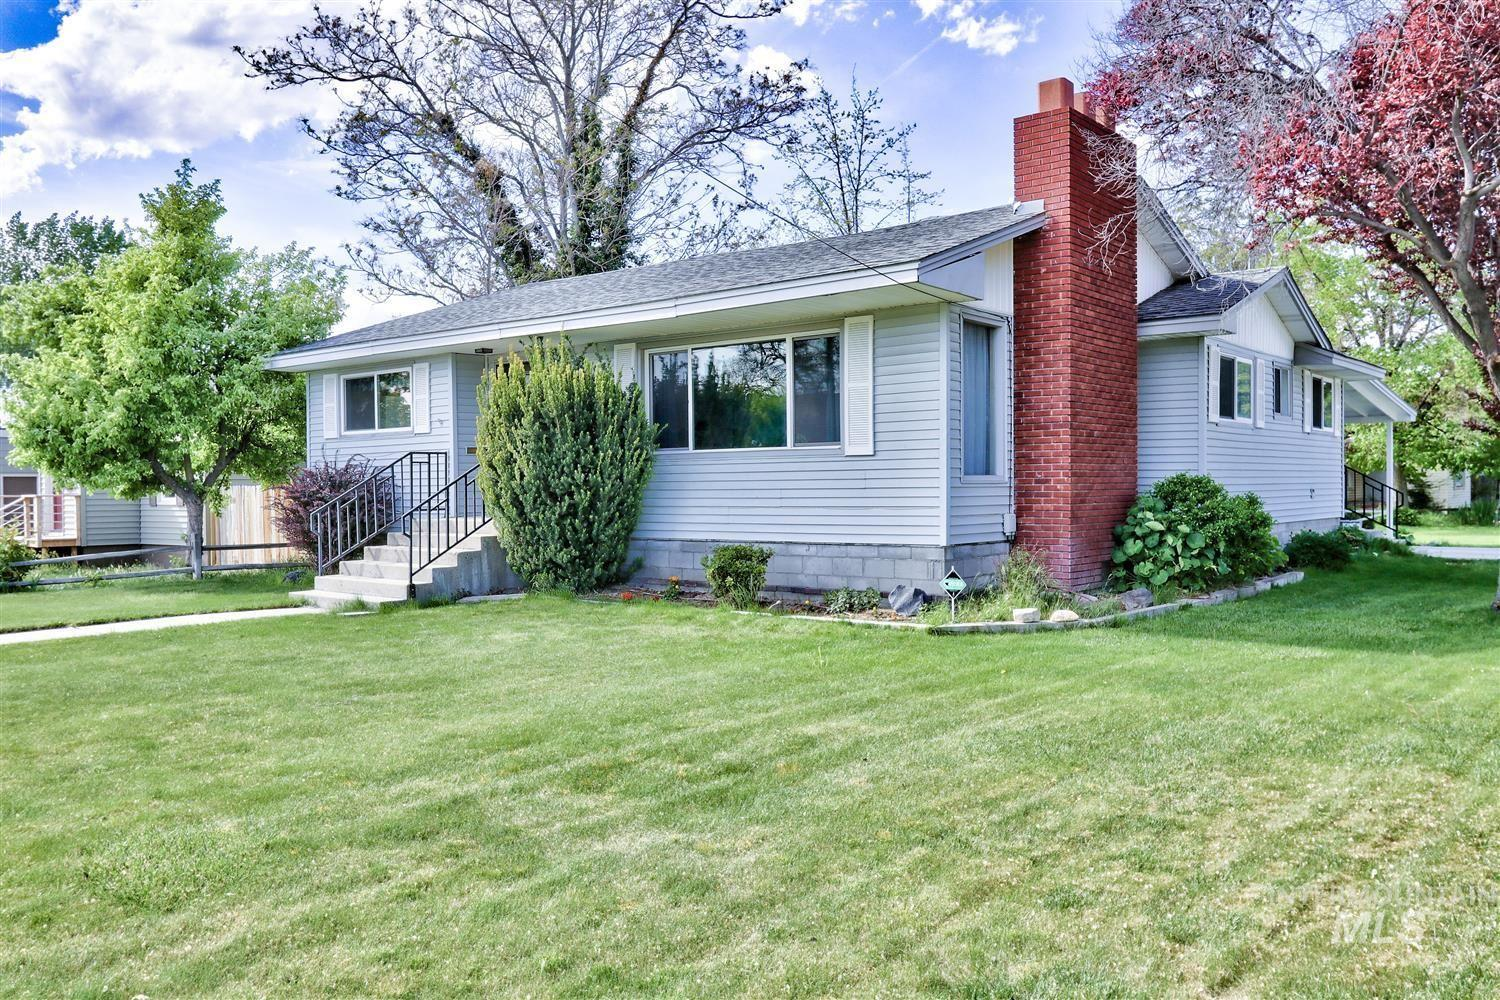 404 Lone Star rd Property Photo - Nampa, ID real estate listing